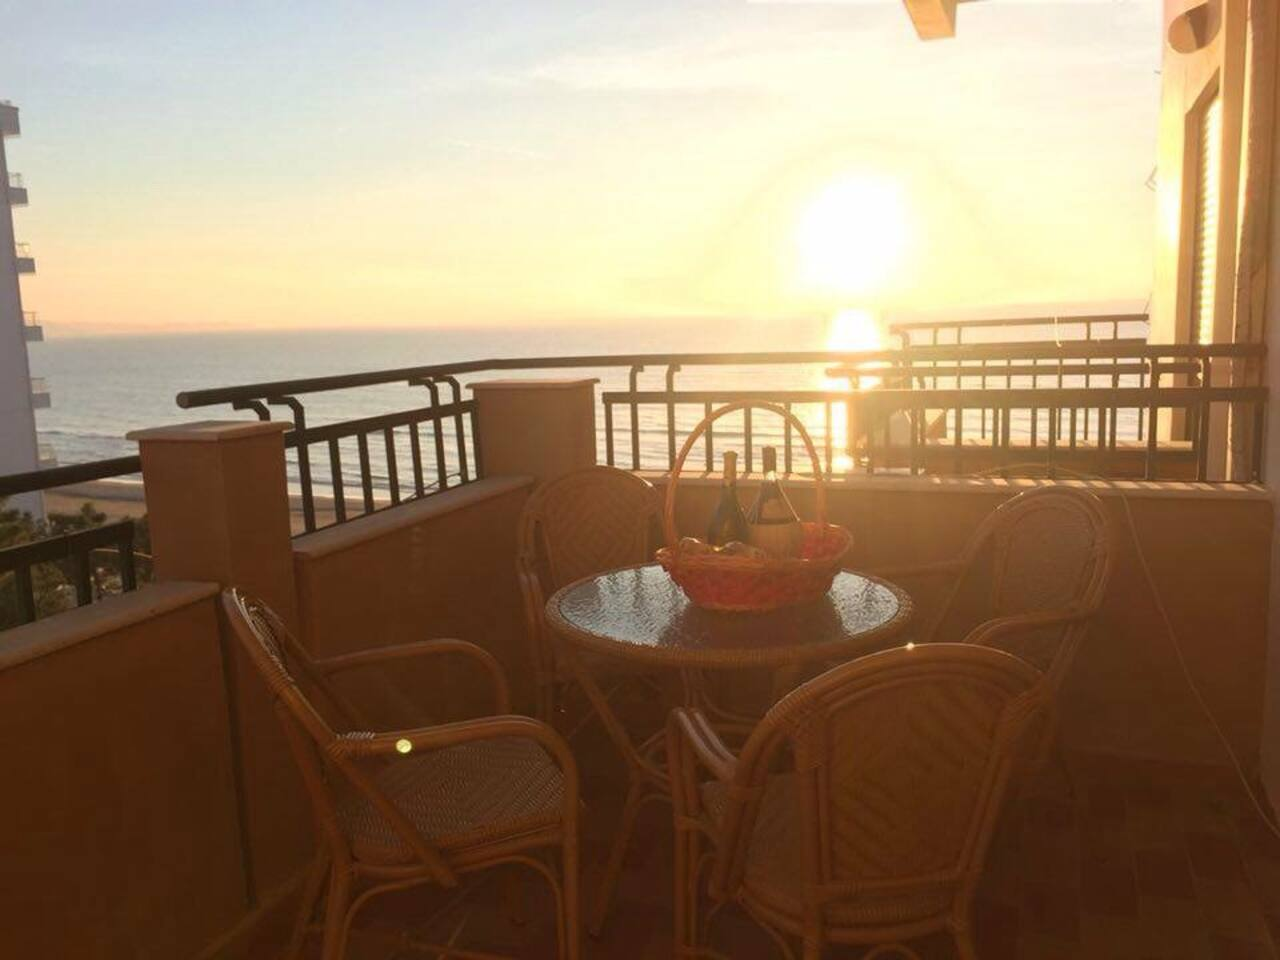 A glass of Albanian wine enjoying the golden sunset and the gorgeous view